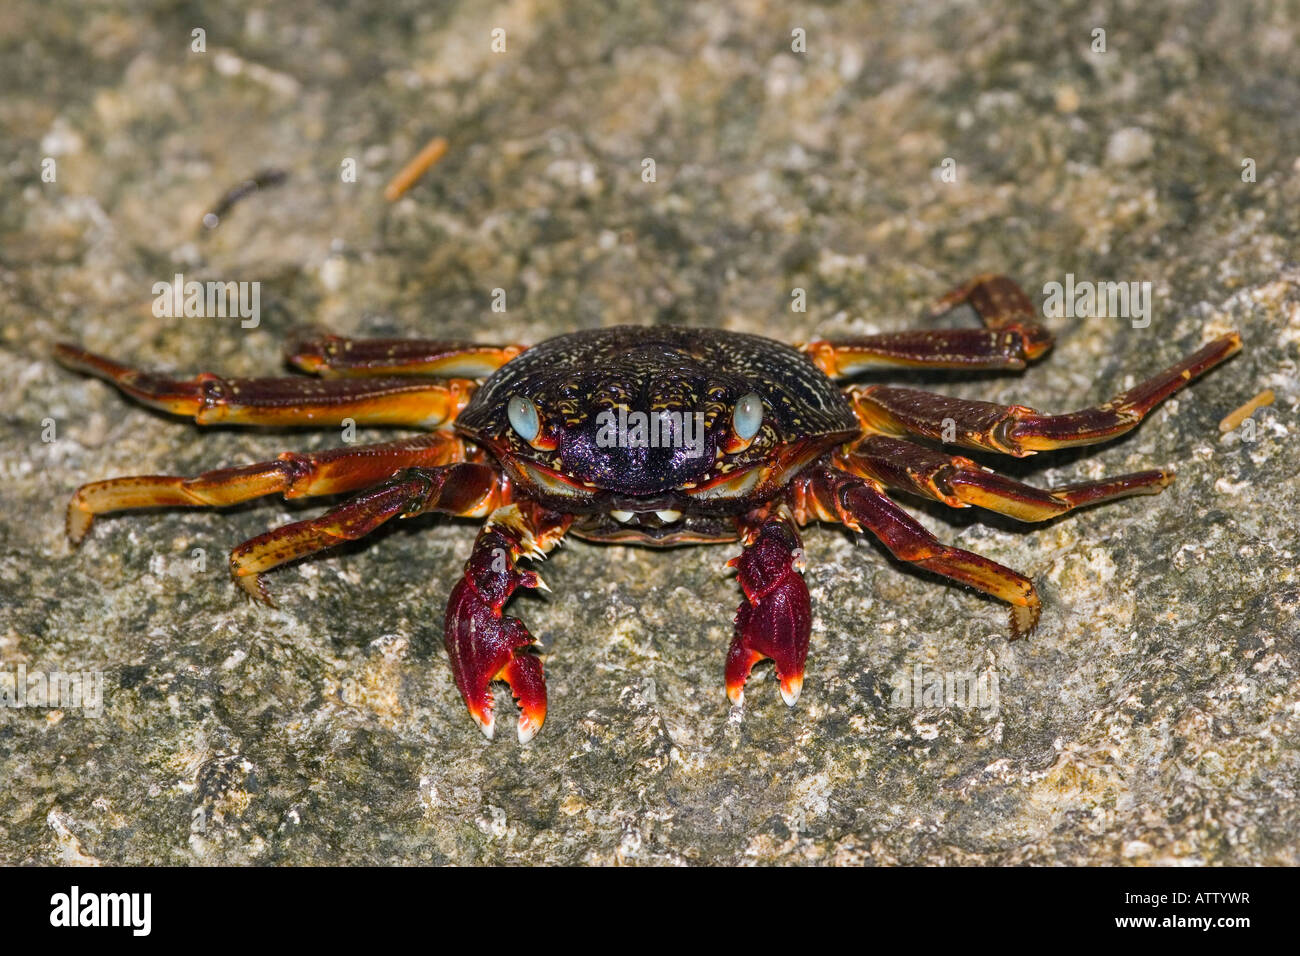 Rock or grapsid crabs, Grapsus sp, live on rocky shores and in the nearby shallow water, Fiji. - Stock Image